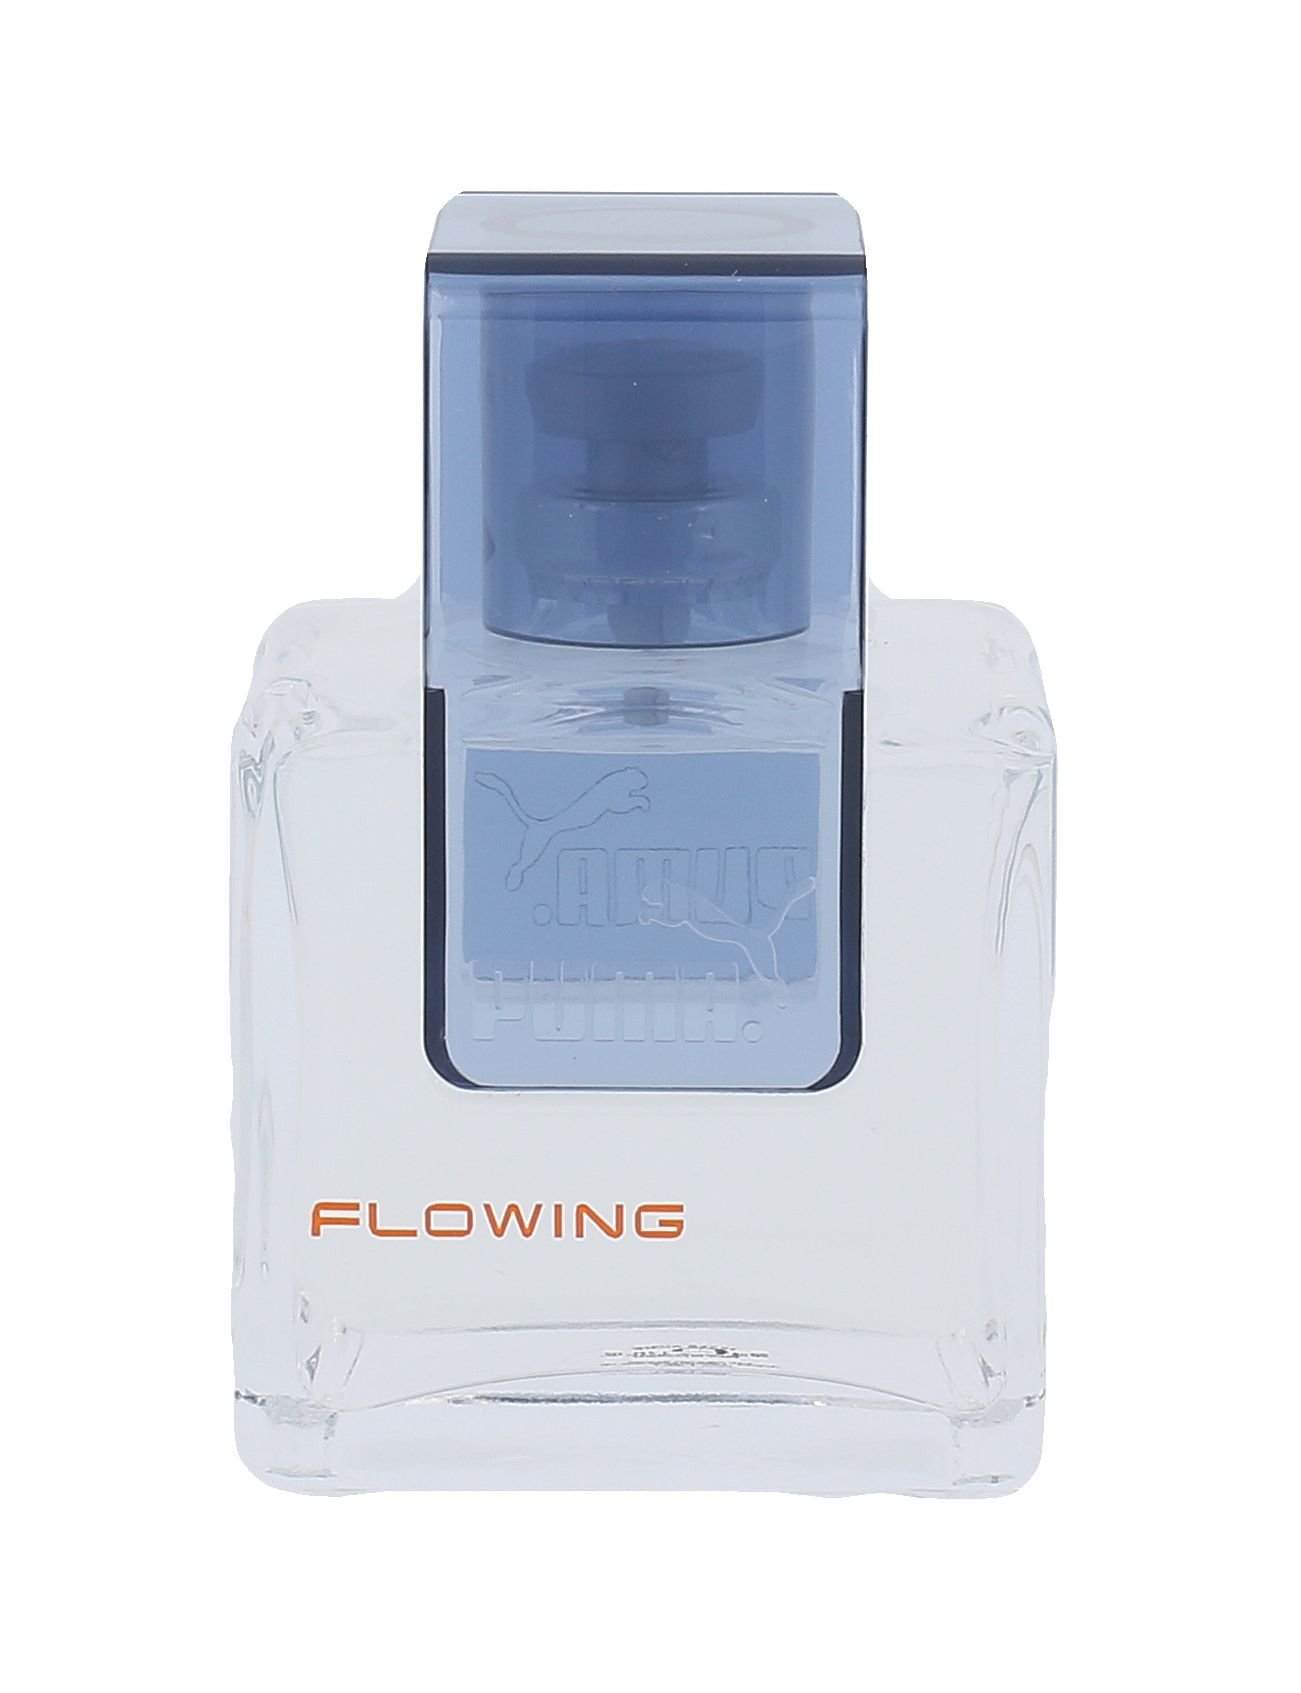 Puma Flowing Aftershave 50ml